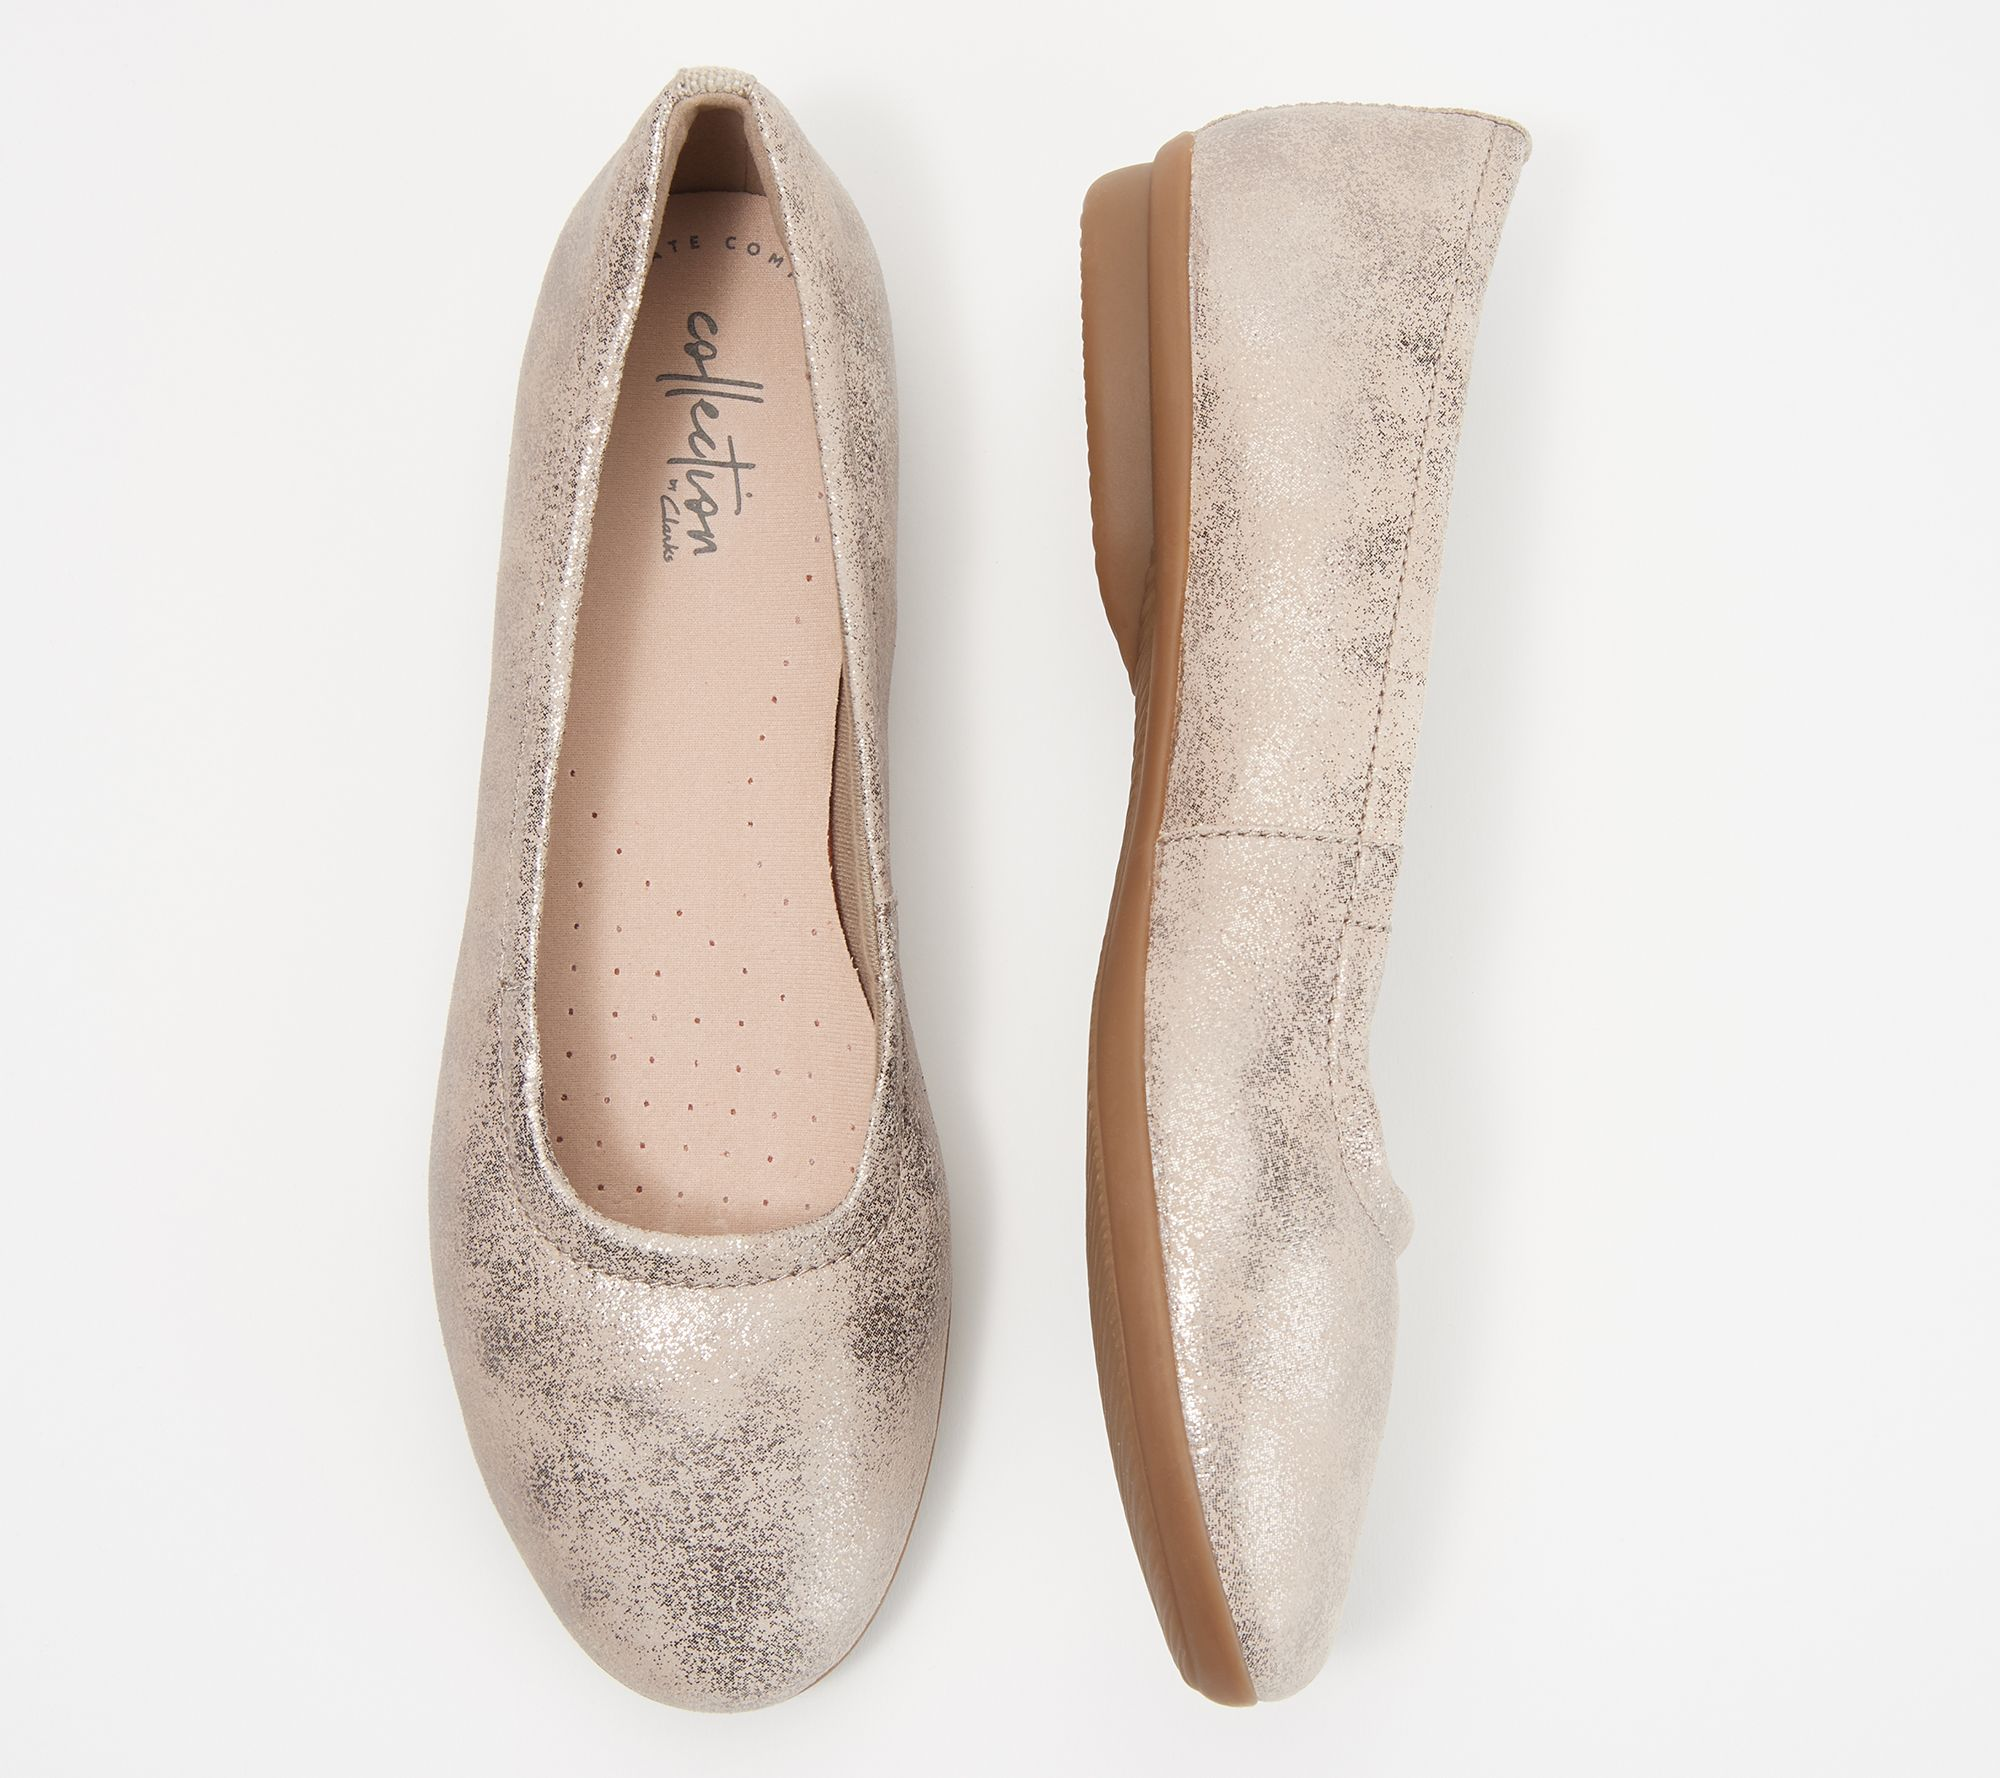 ad6043781 Clarks Collection Leather or Suede Flats- Gracelin Vail - Page 1 — QVC.com